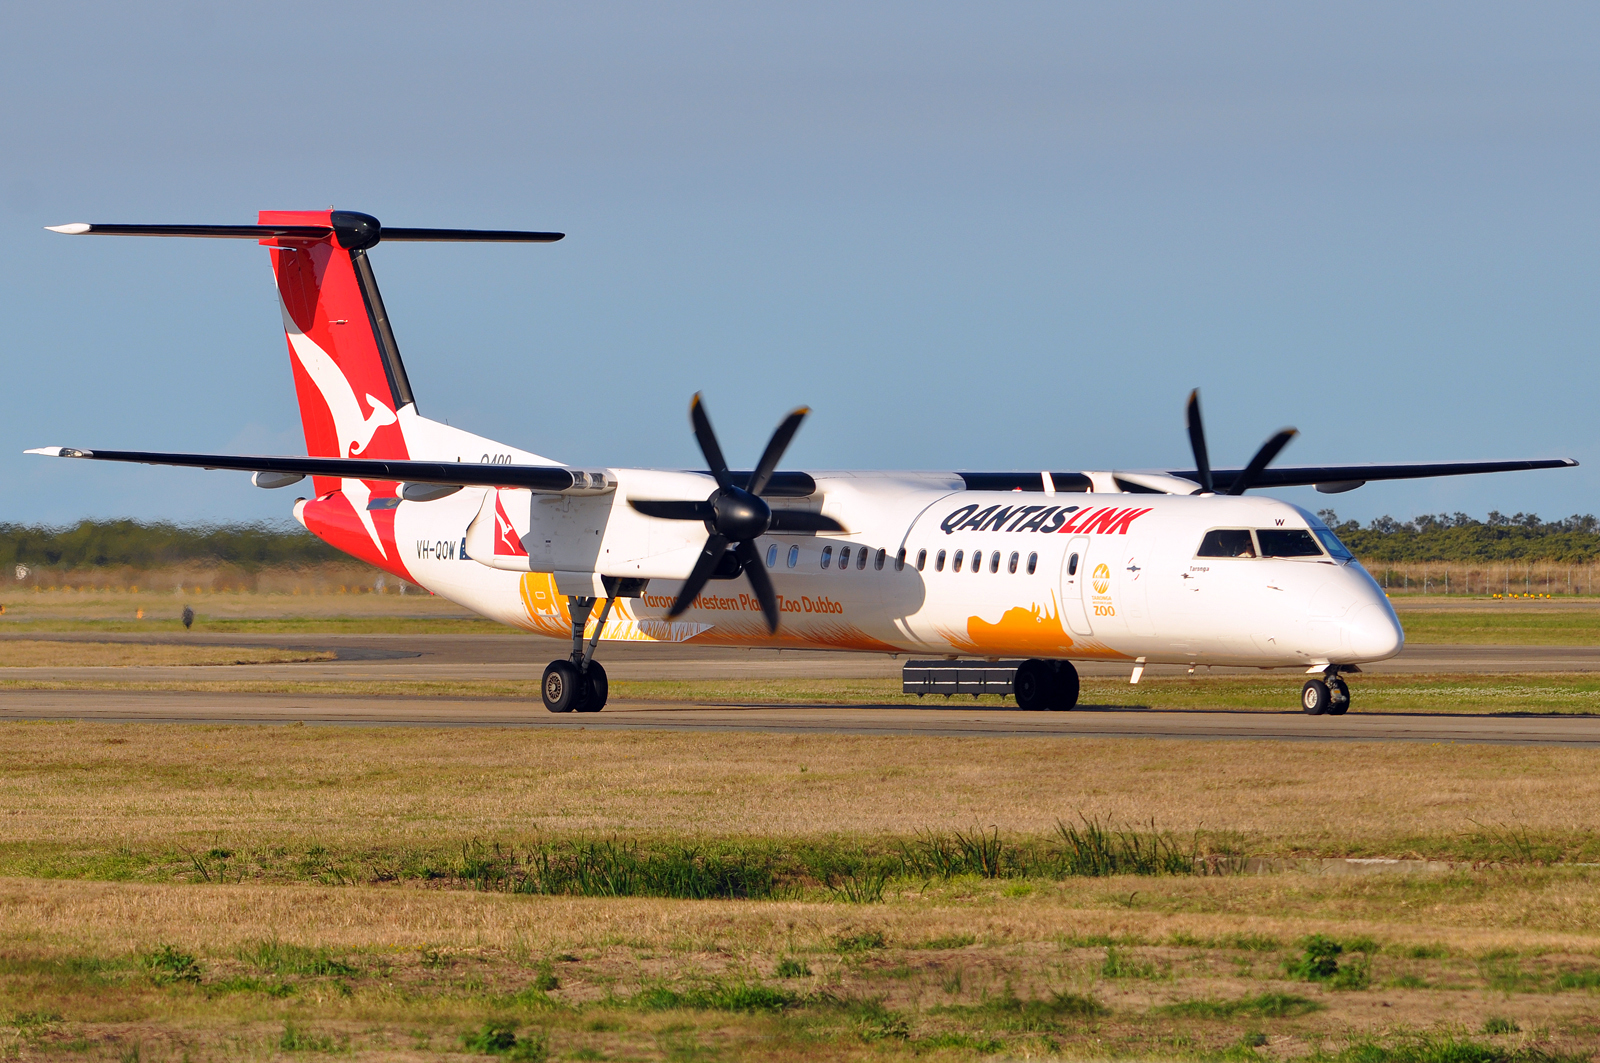 QantasLink airplane on runway | Point Hacks